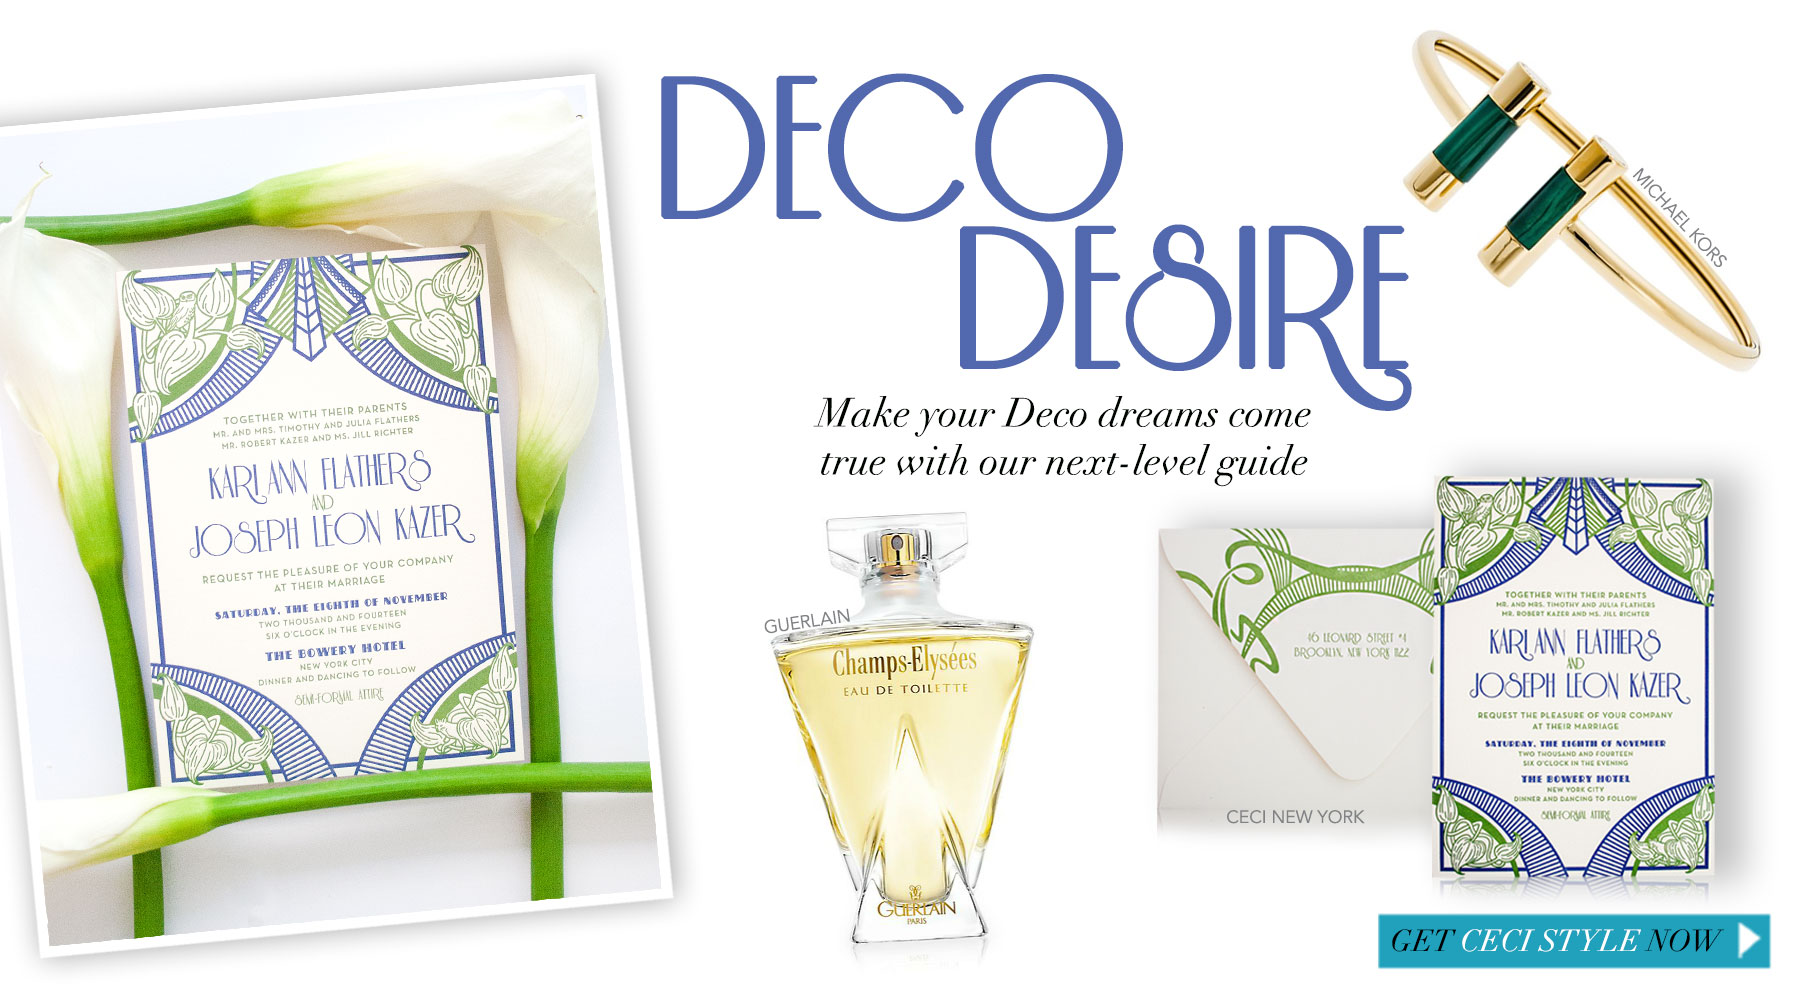 Deco Desire - Make your Deco dreams come true with our next-level guide